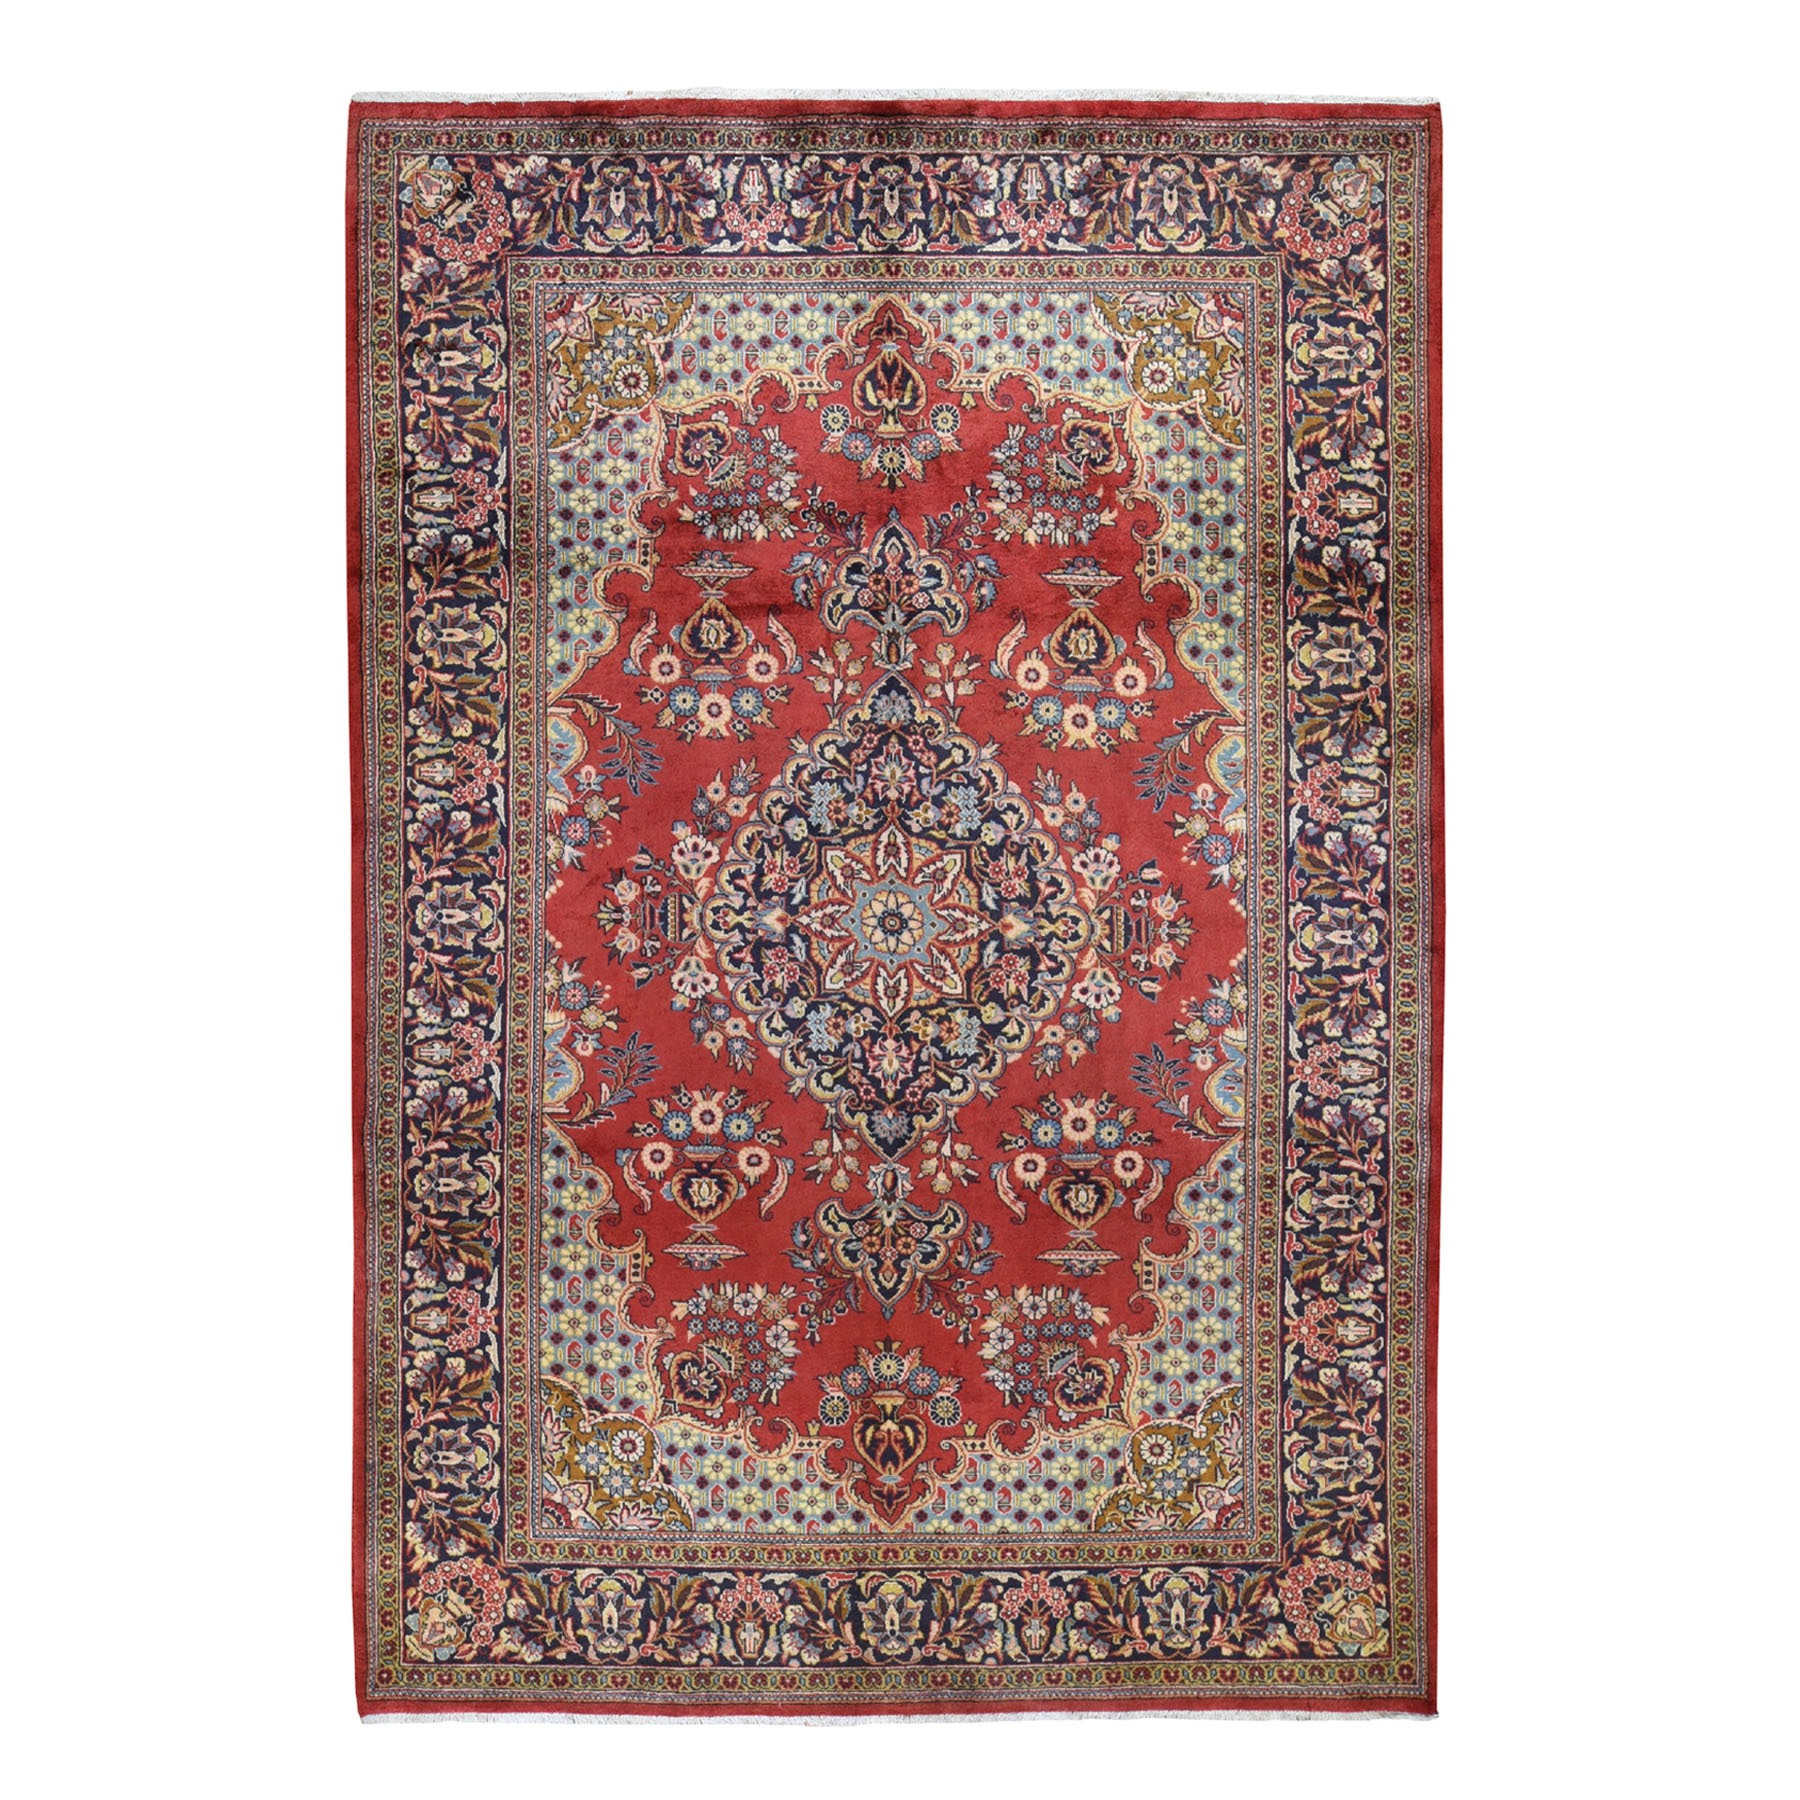 "7'2""X10'5"" Red New Persian Tabriz Pure Wool Full Pile Hand Knotted Oriental Rug moad7dbe"